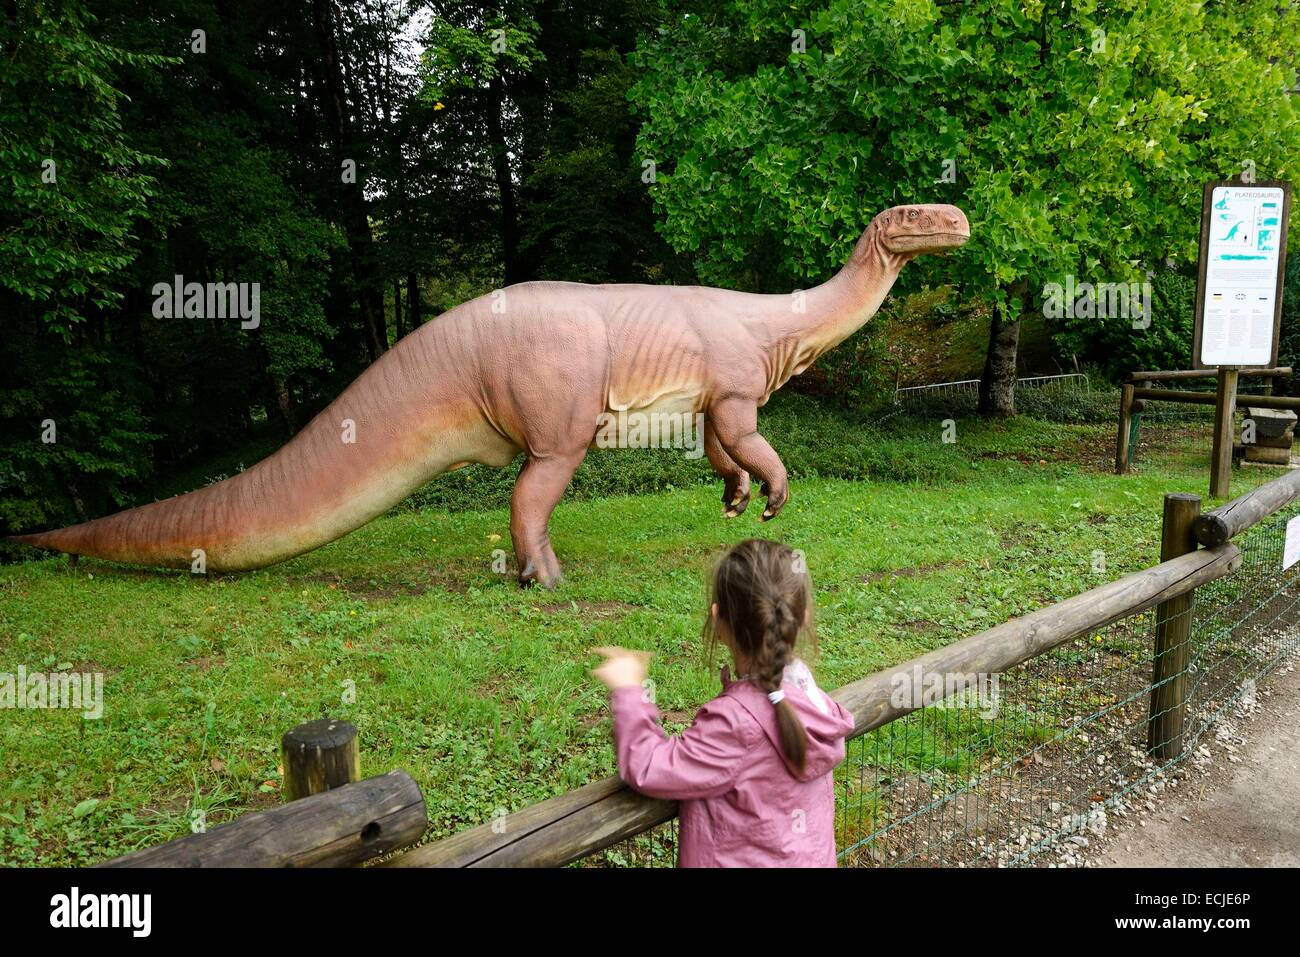 France, Doubs, Charbonnieres les Sapins, Dino Zoo prehistoric park, Plateosaurus - Stock Image